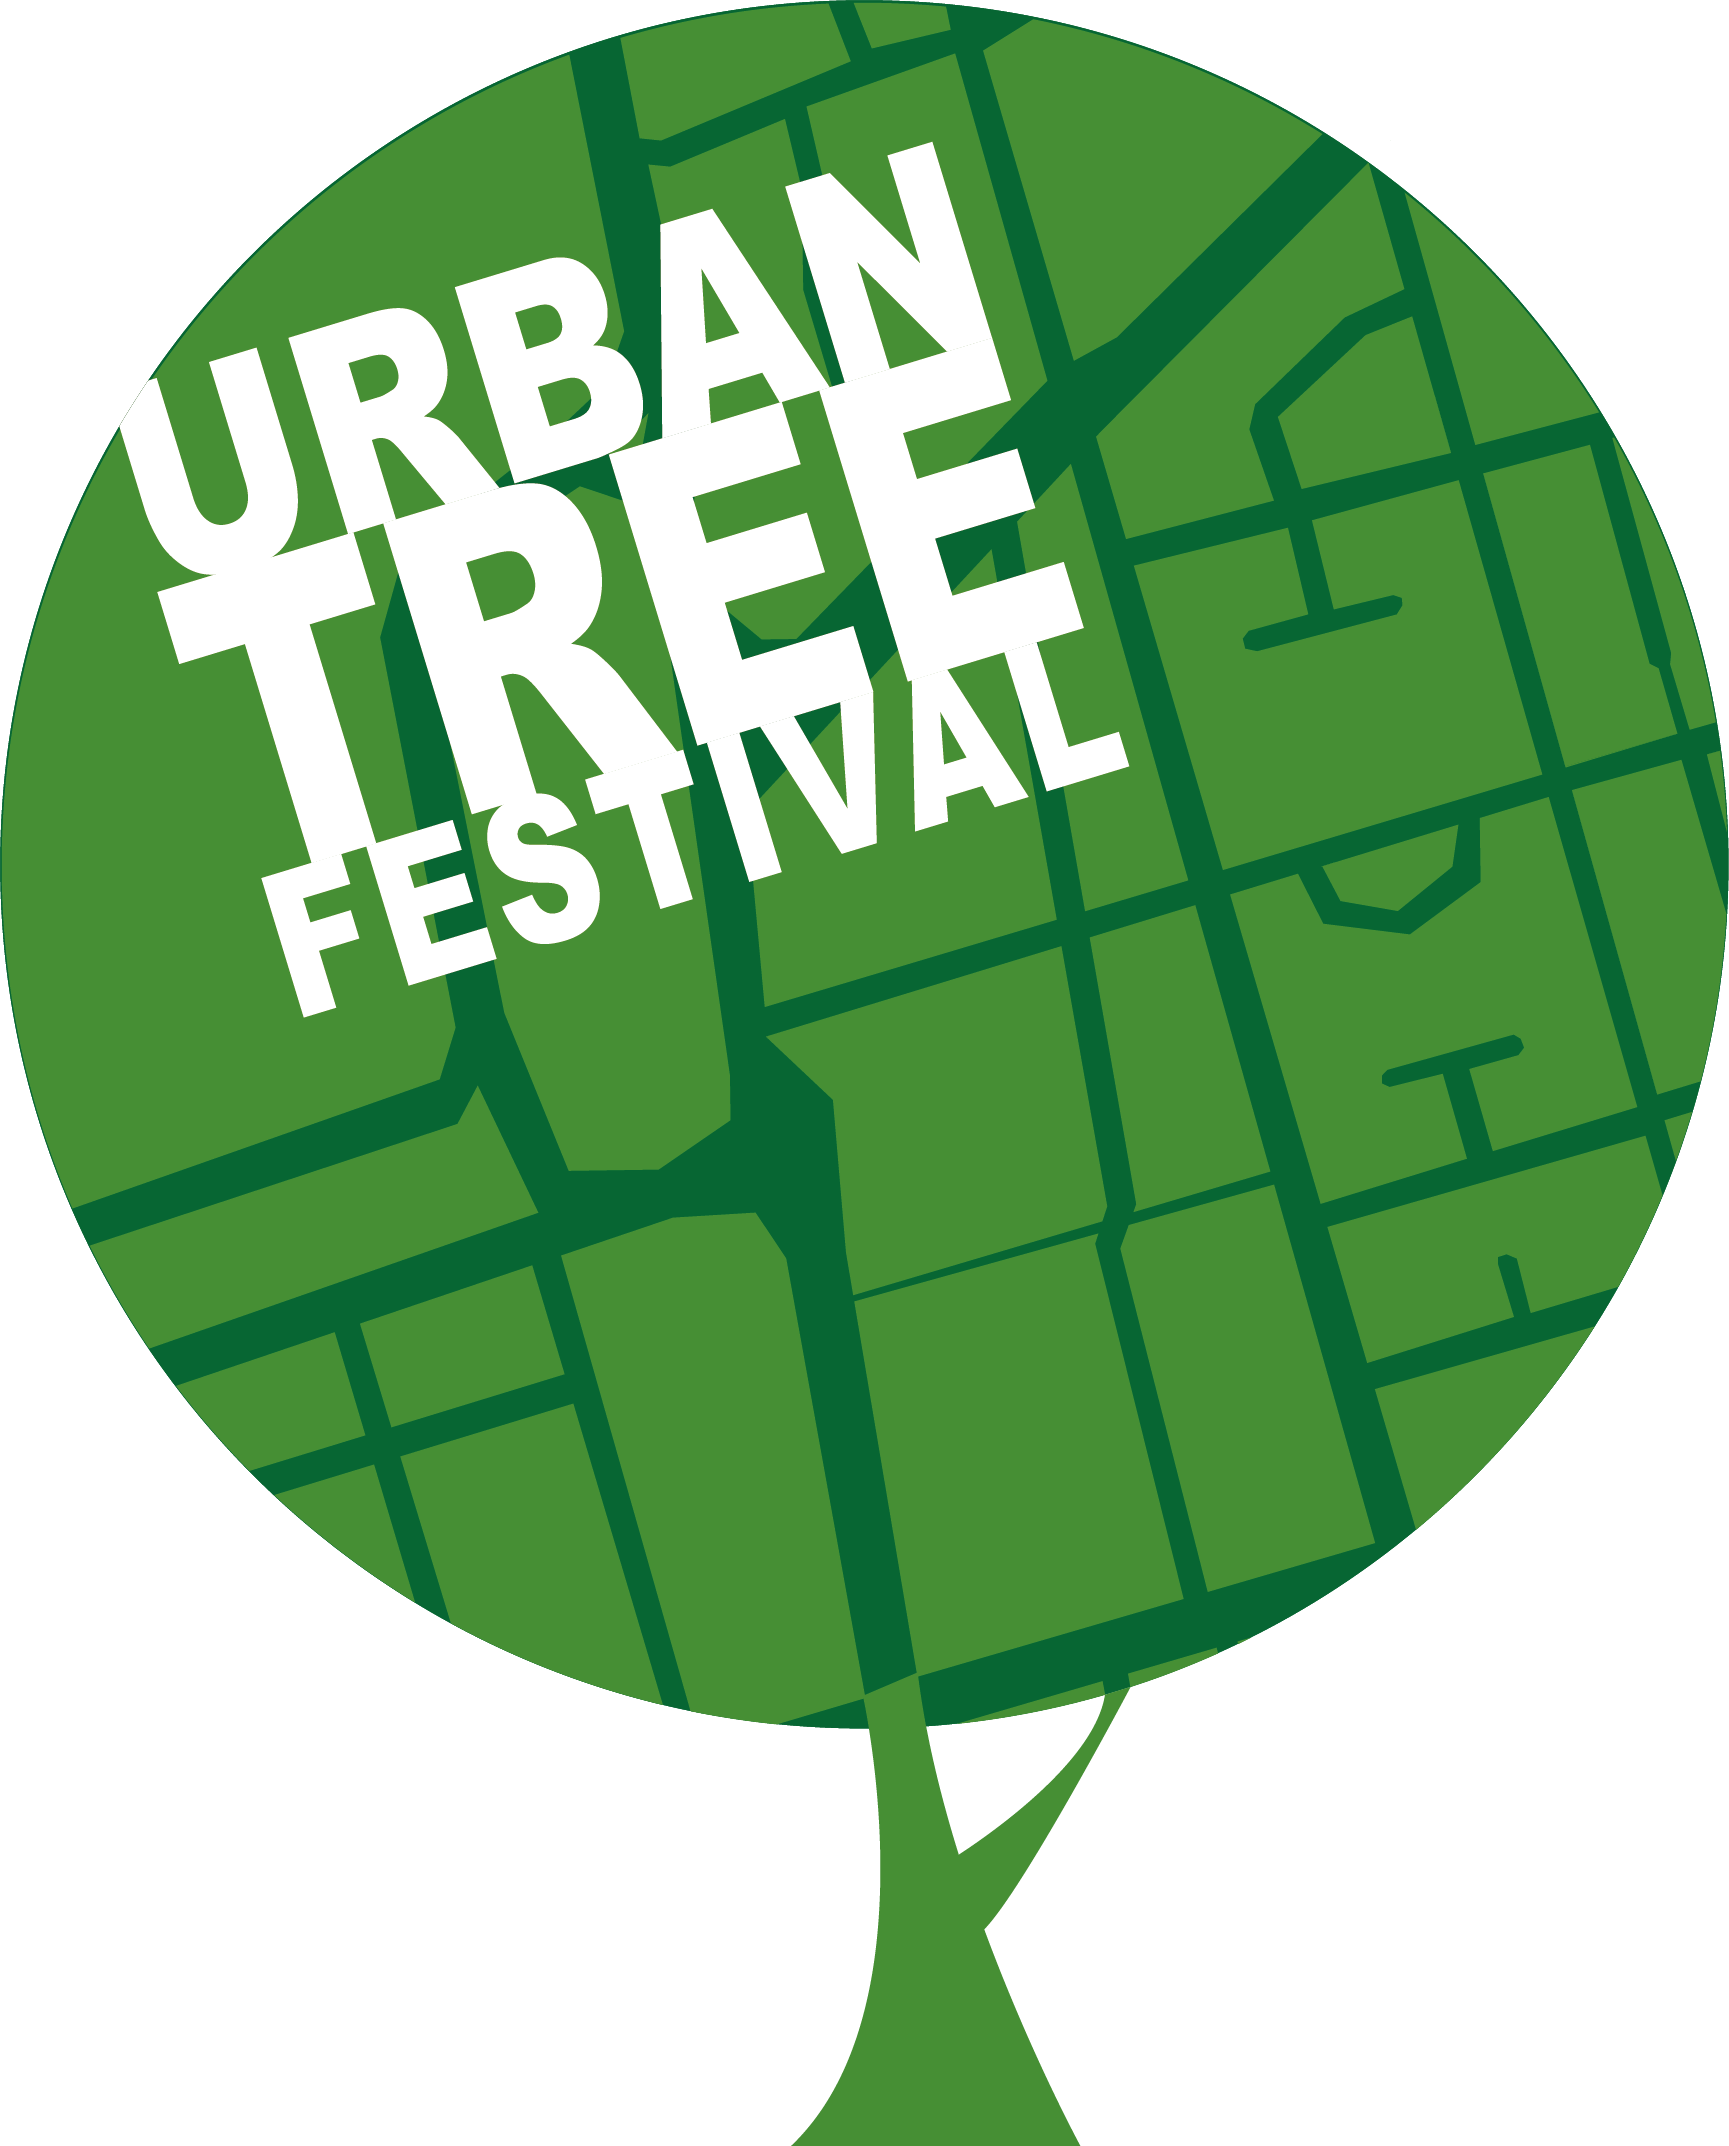 The Urban Tree Festival